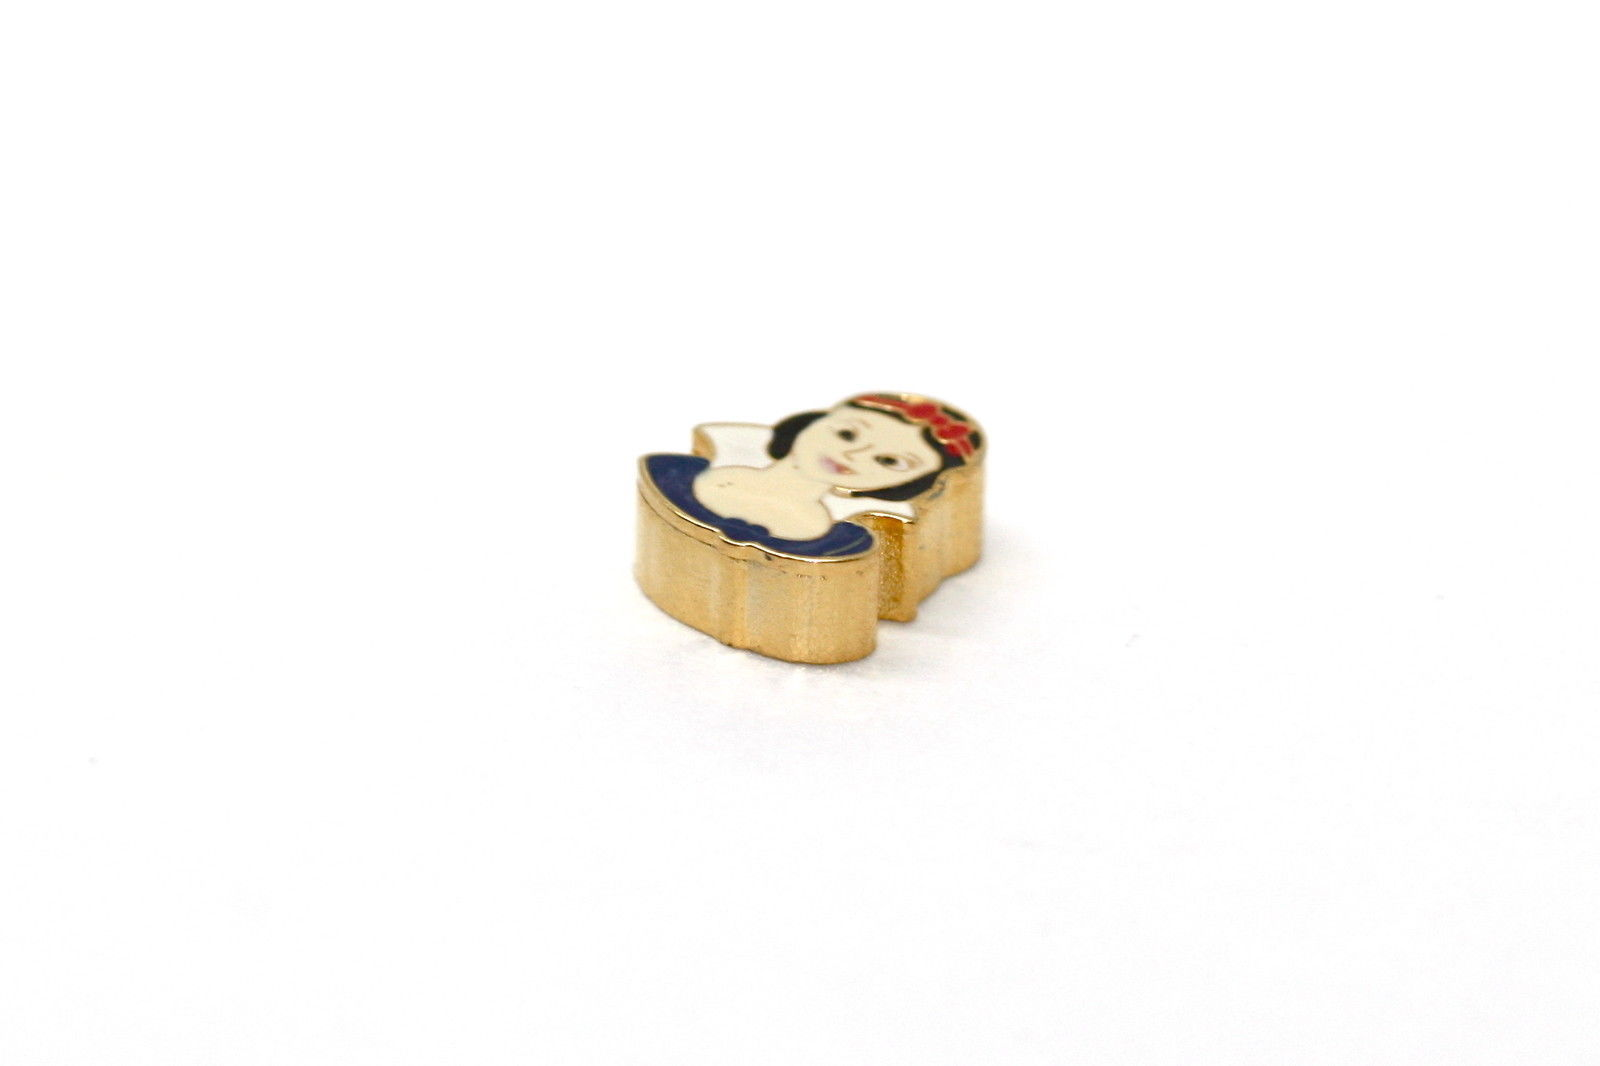 BRACCIALE DISNEY PRINCESS SNOW WHITE STAINLESS STEEL GOLD PLATED FLOATING CHARM